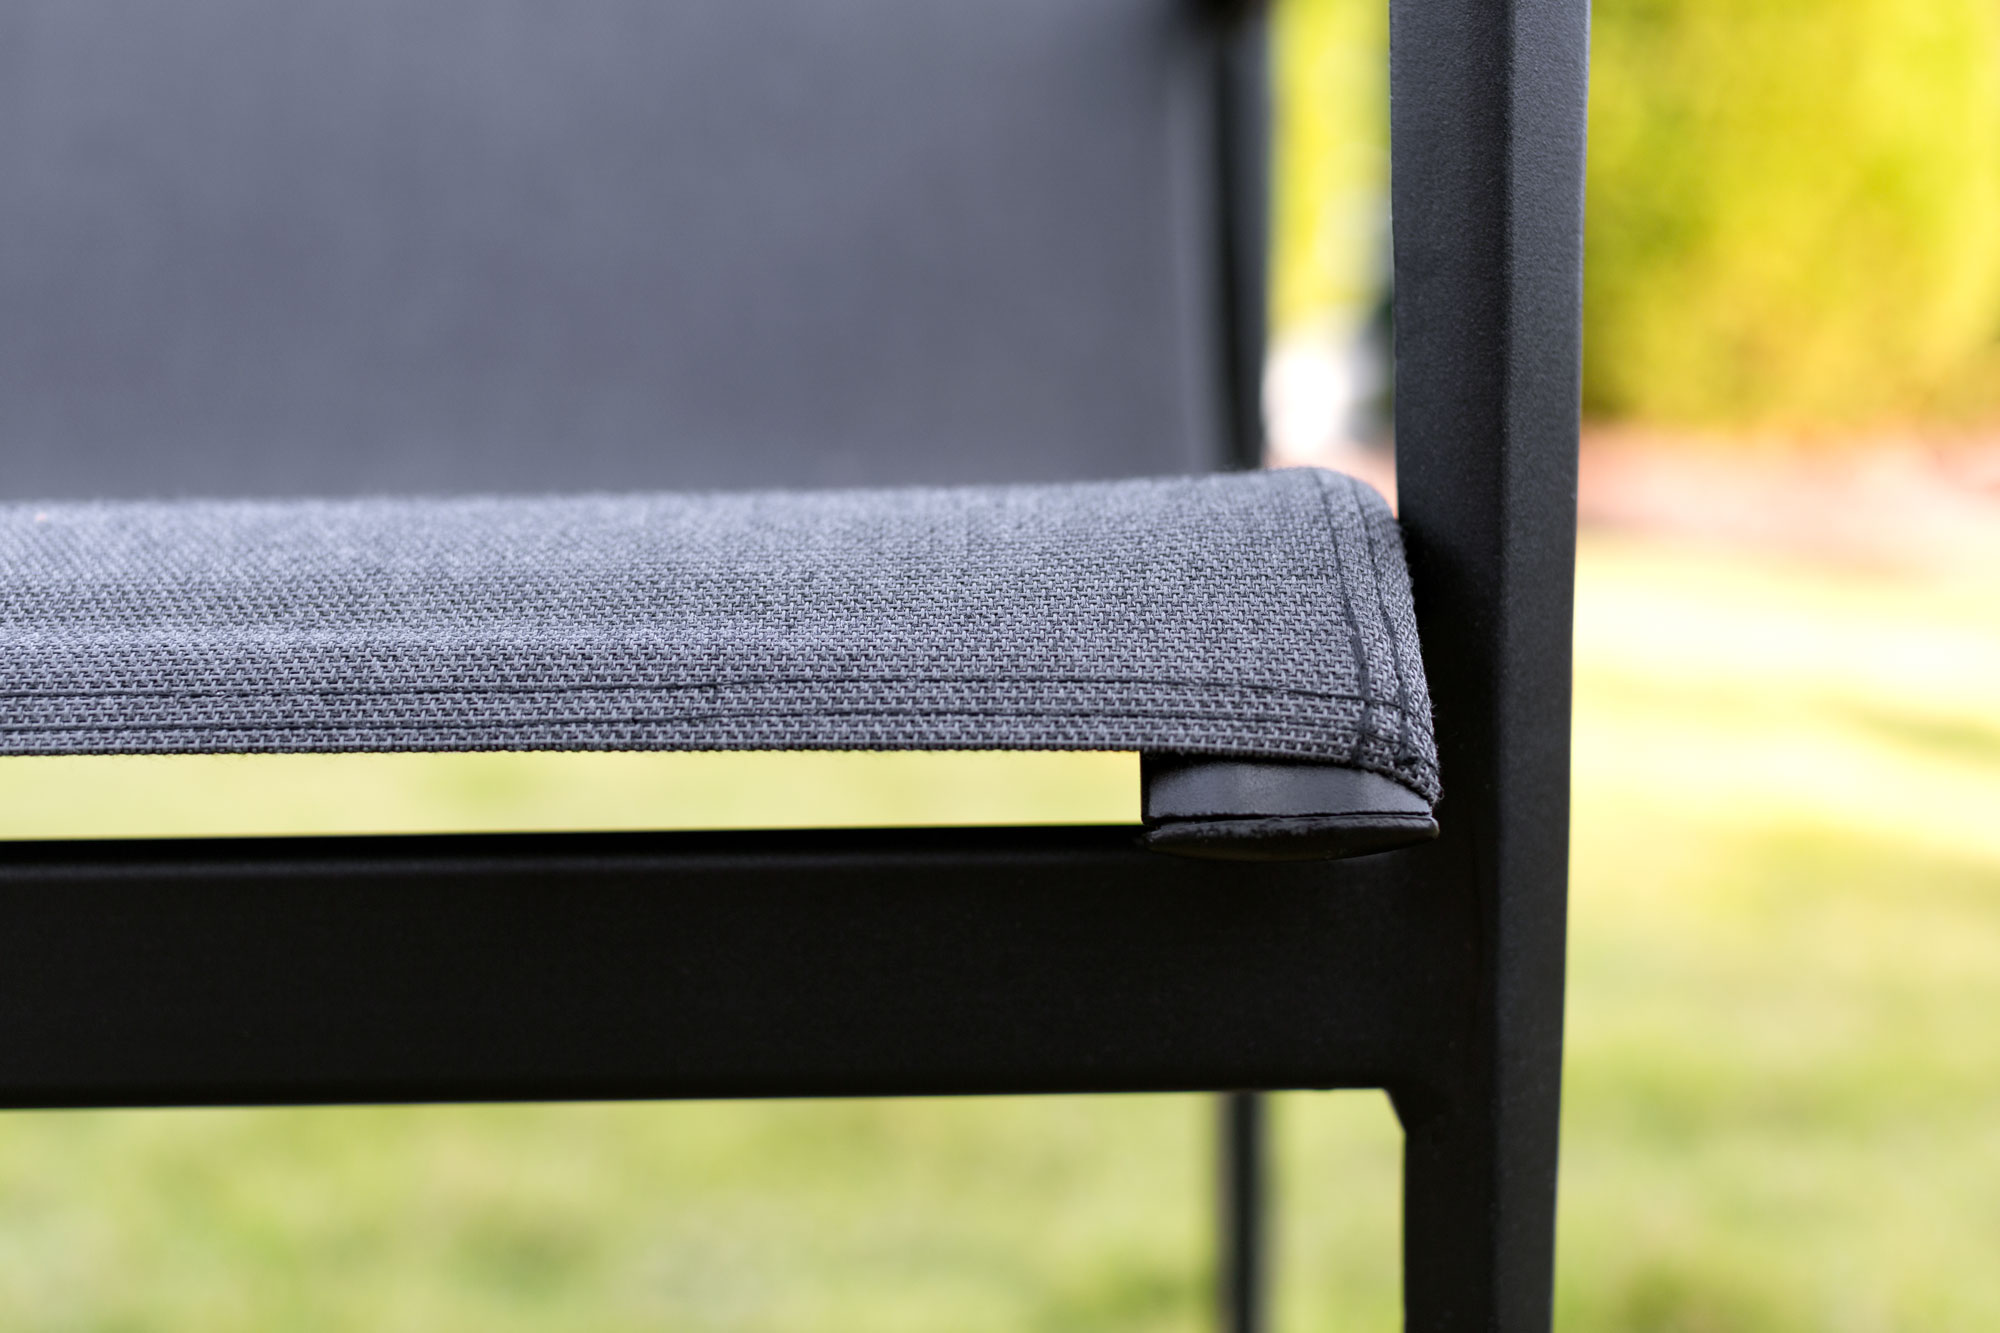 Detailing of Sunbrella Sling fabric made into an outdoor chair.